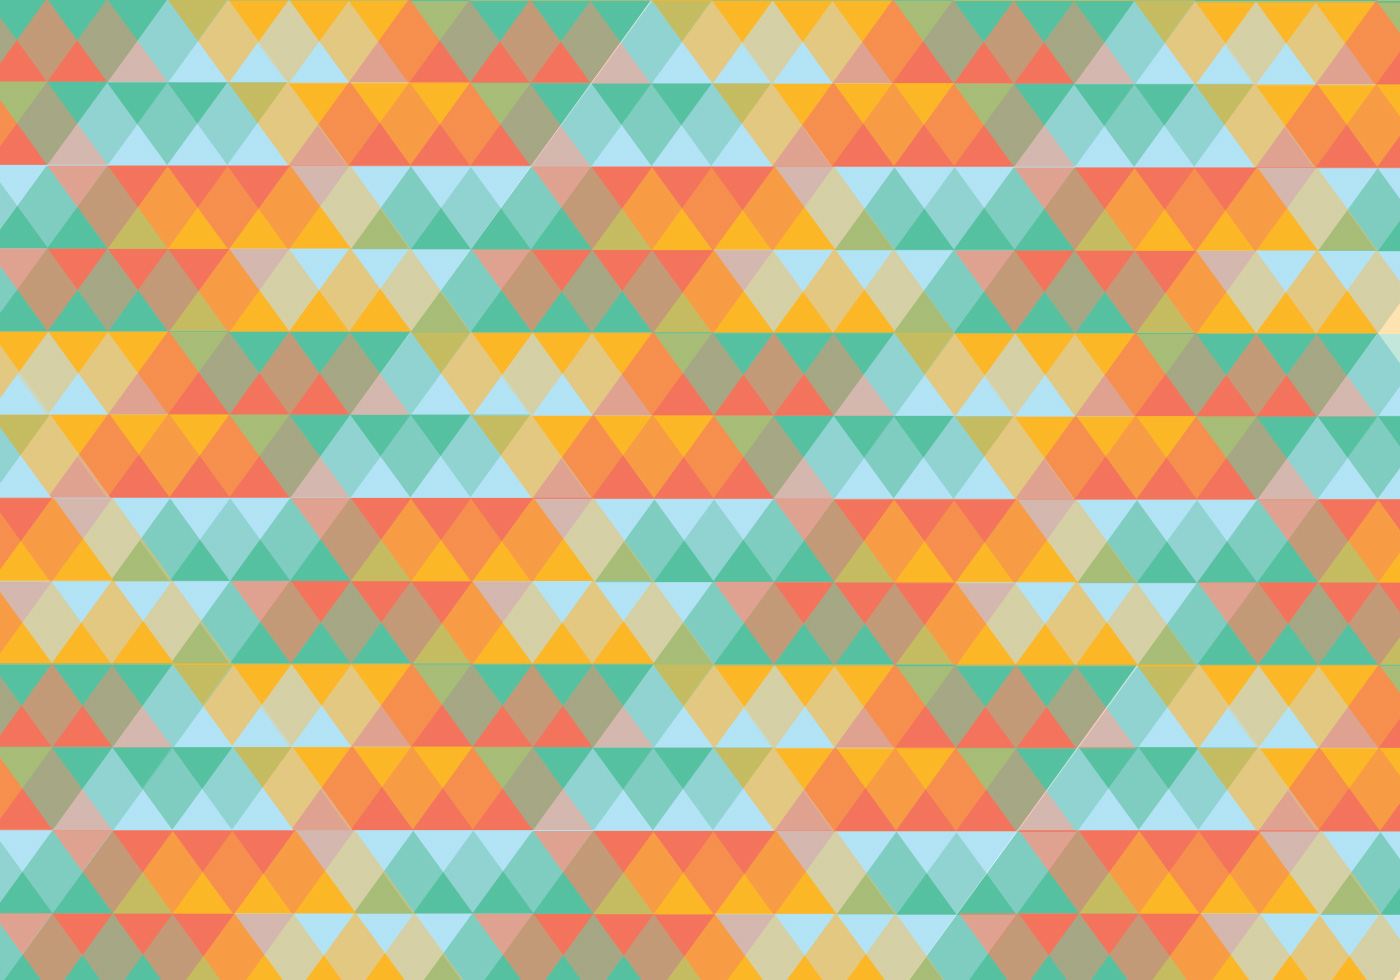 Abstract Triangle Geometric Pattern Background Download: geometric patterns